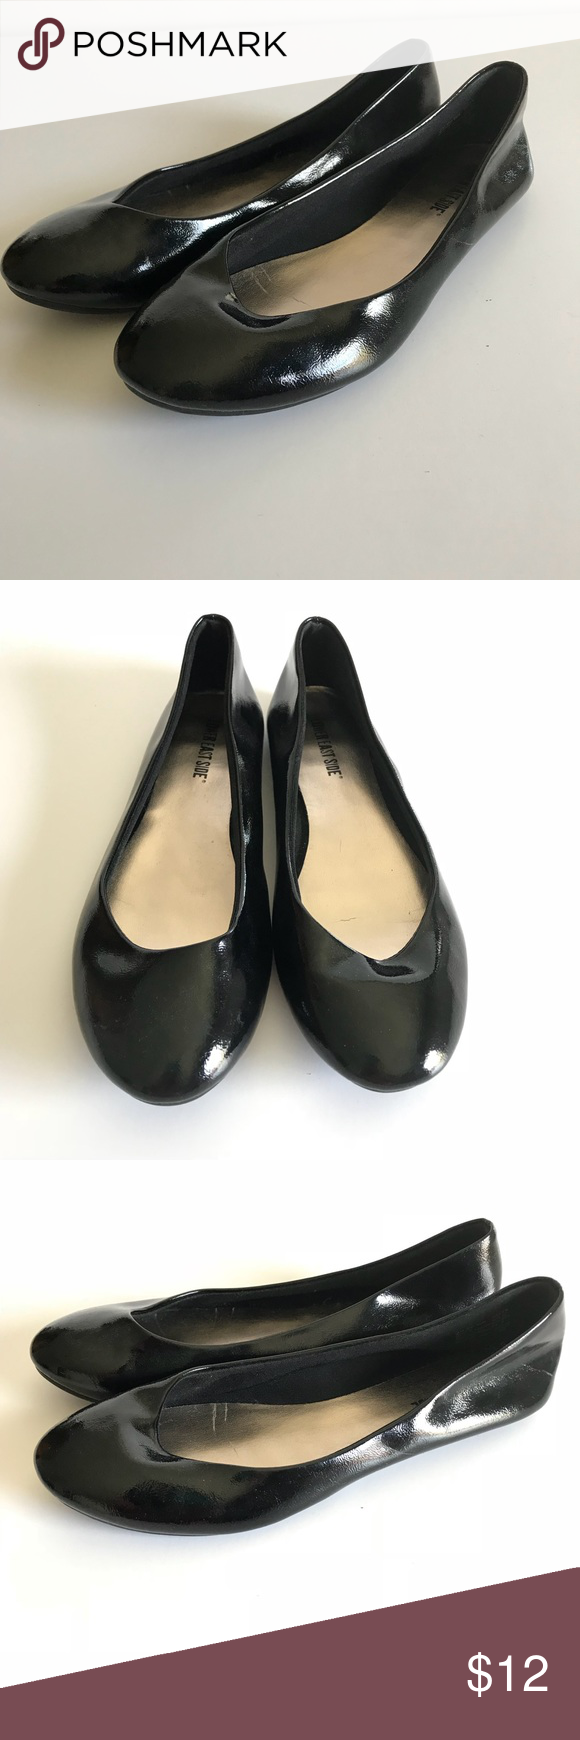 9989b120ee1c Smooth Faux Leather Simple Black flats slip on Good condition women s simple  black patent leather flats